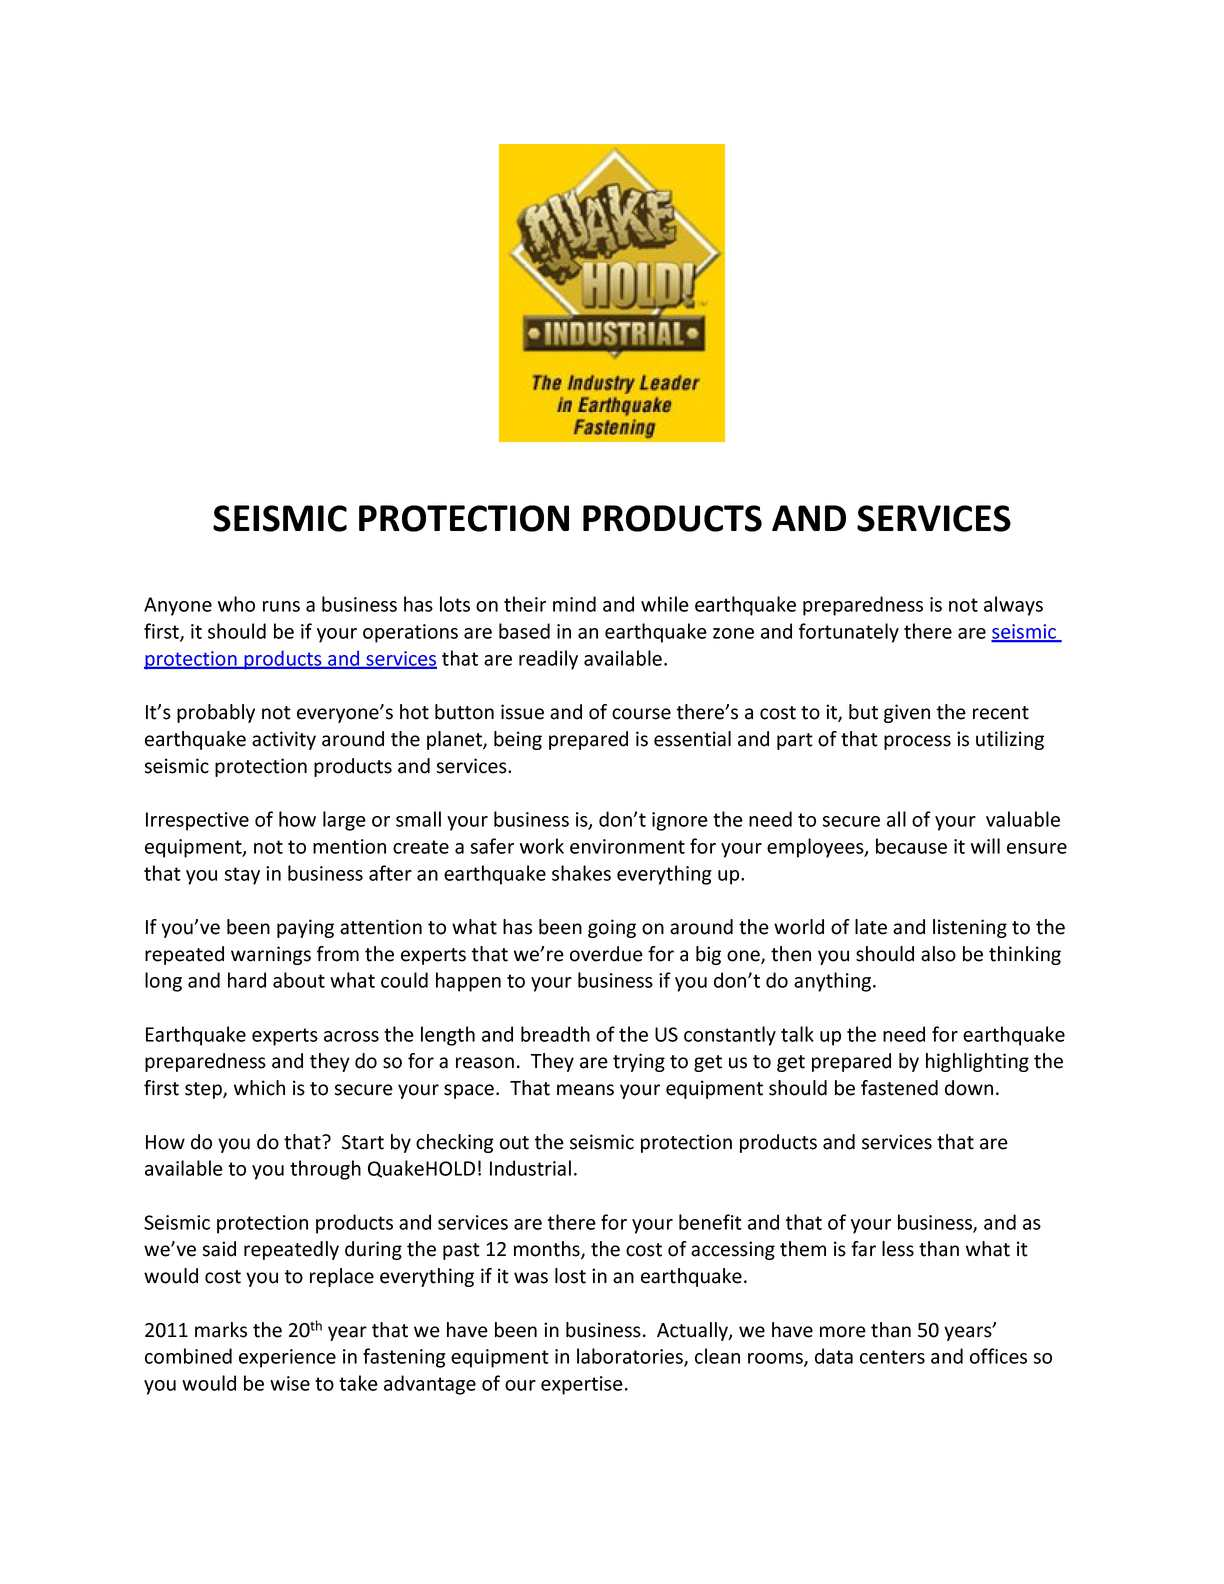 20+ Calaméo   SEISMIC PROTECTION PRODUCTS AND SERVICES Kollektion